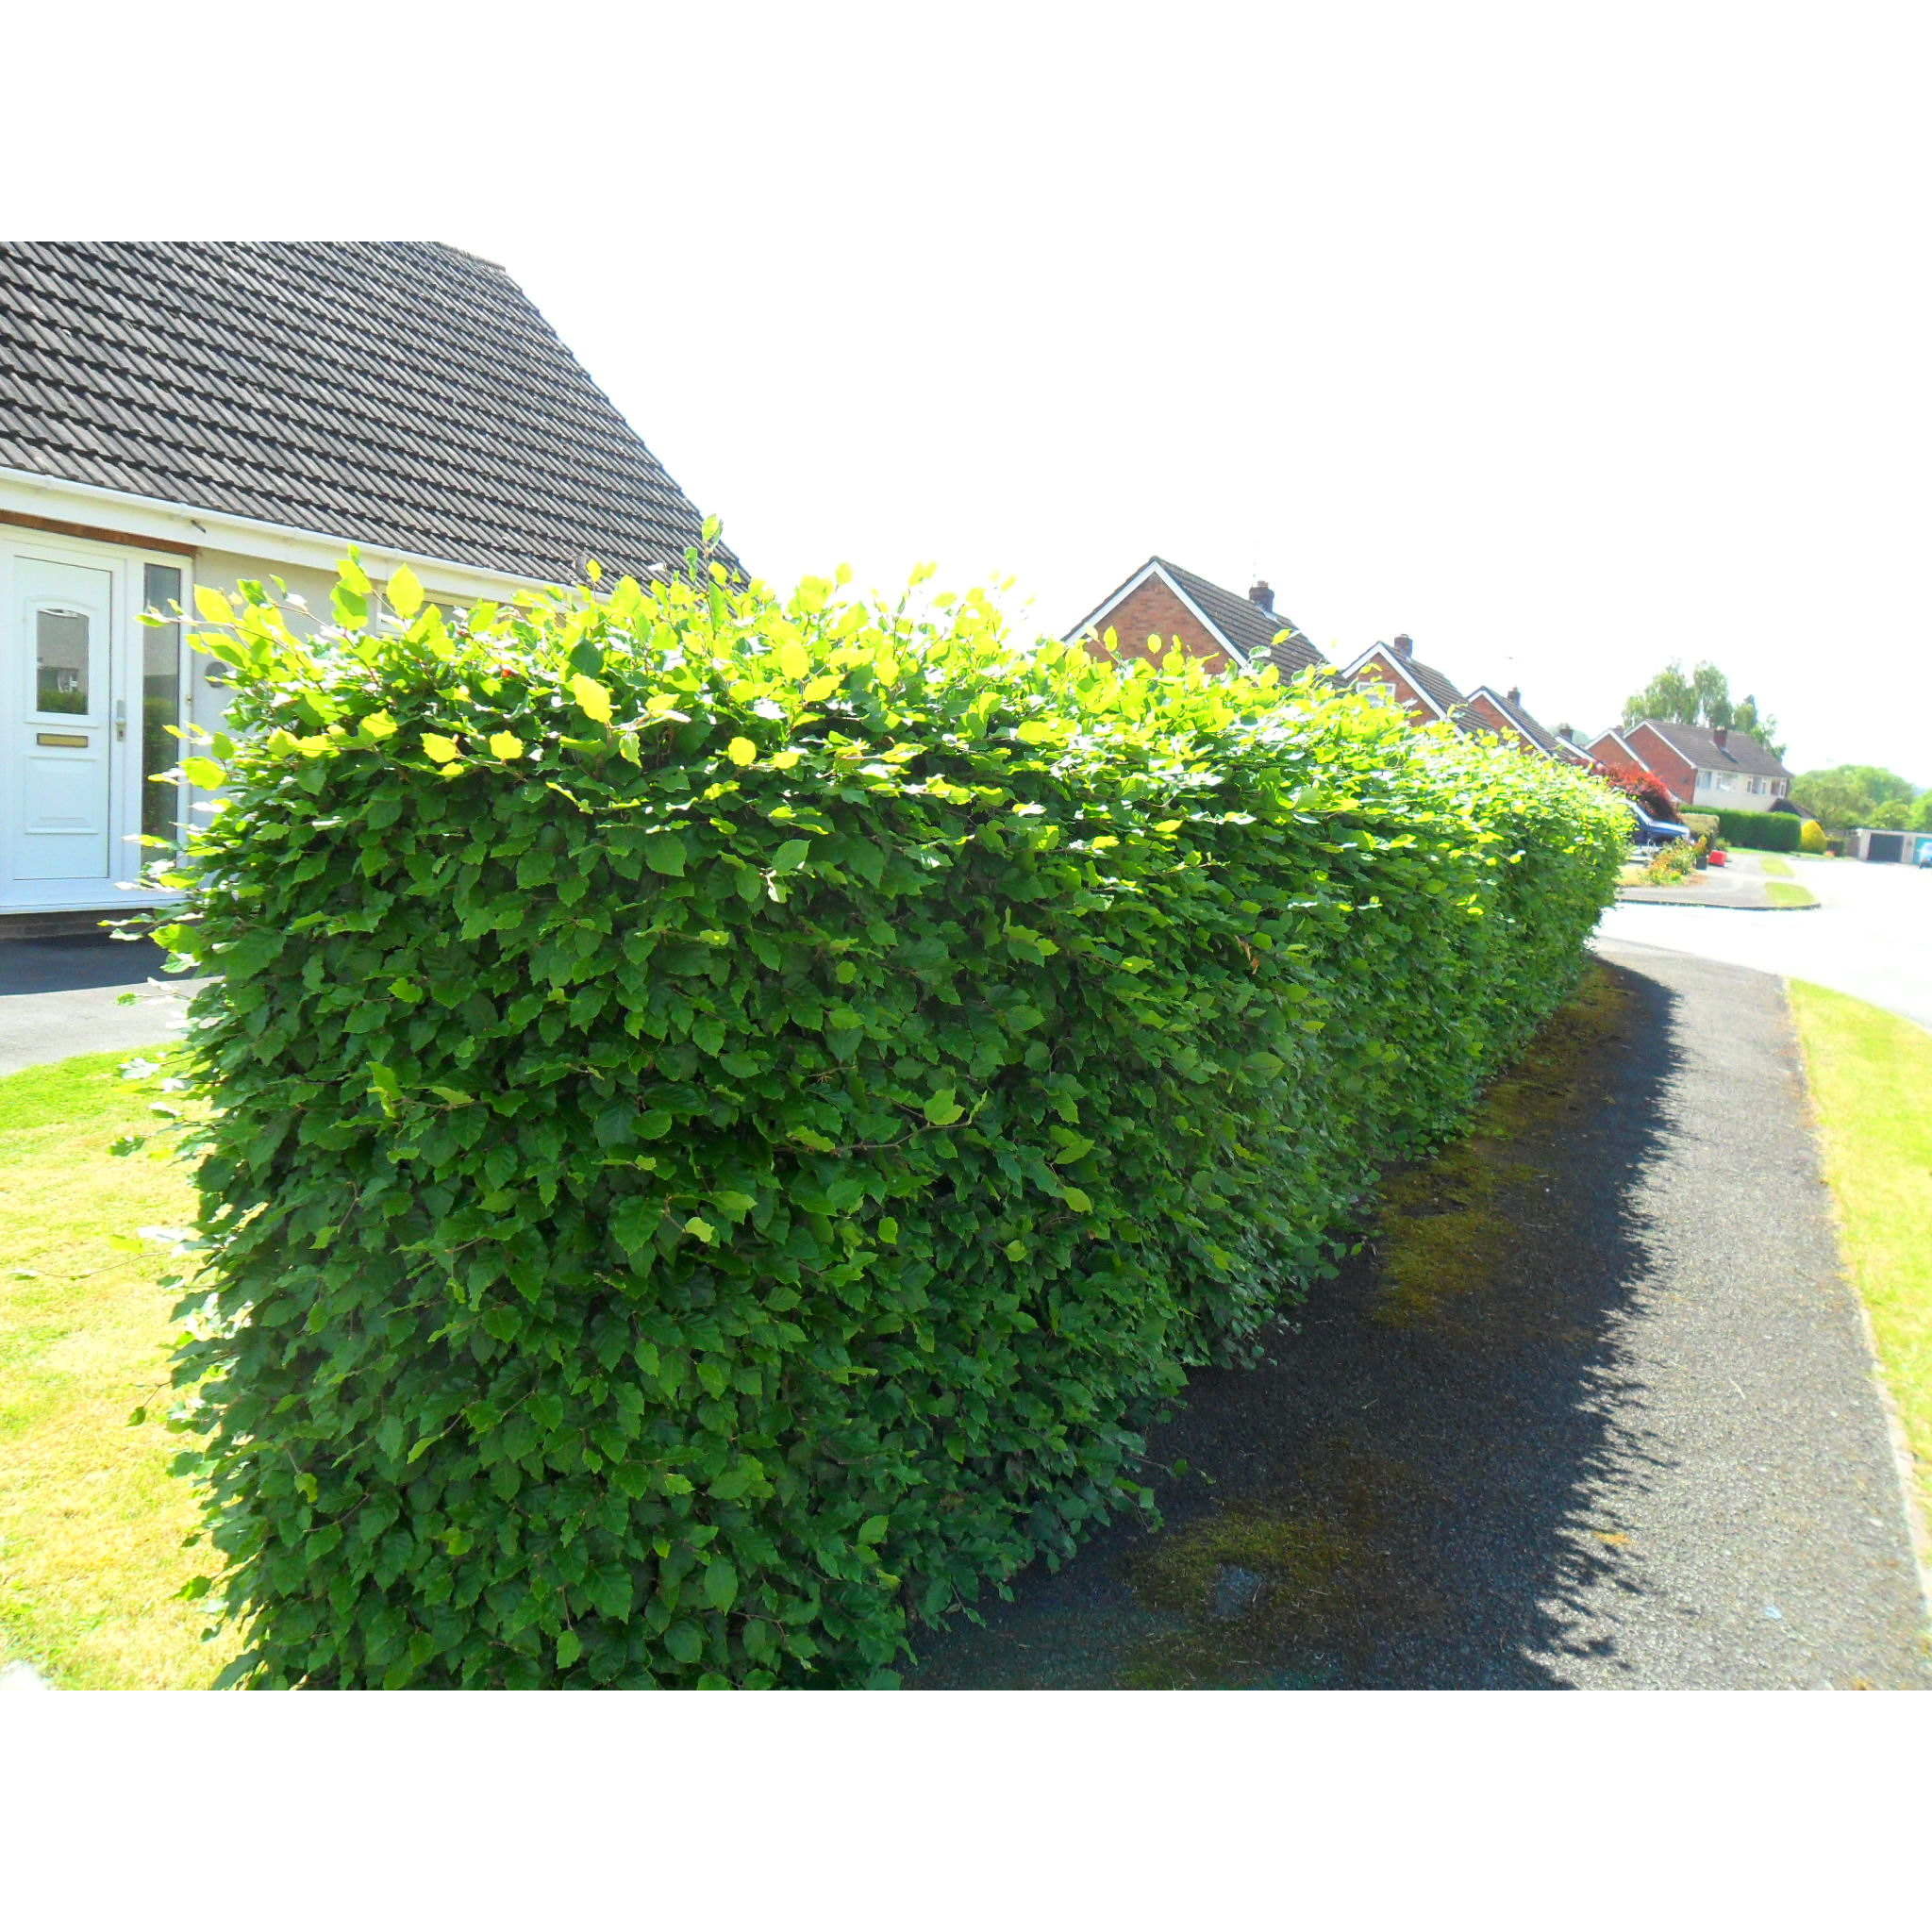 Looking for hedging plants in Guilsfield? Shop your hedging plants online at Derwen Wholesale!